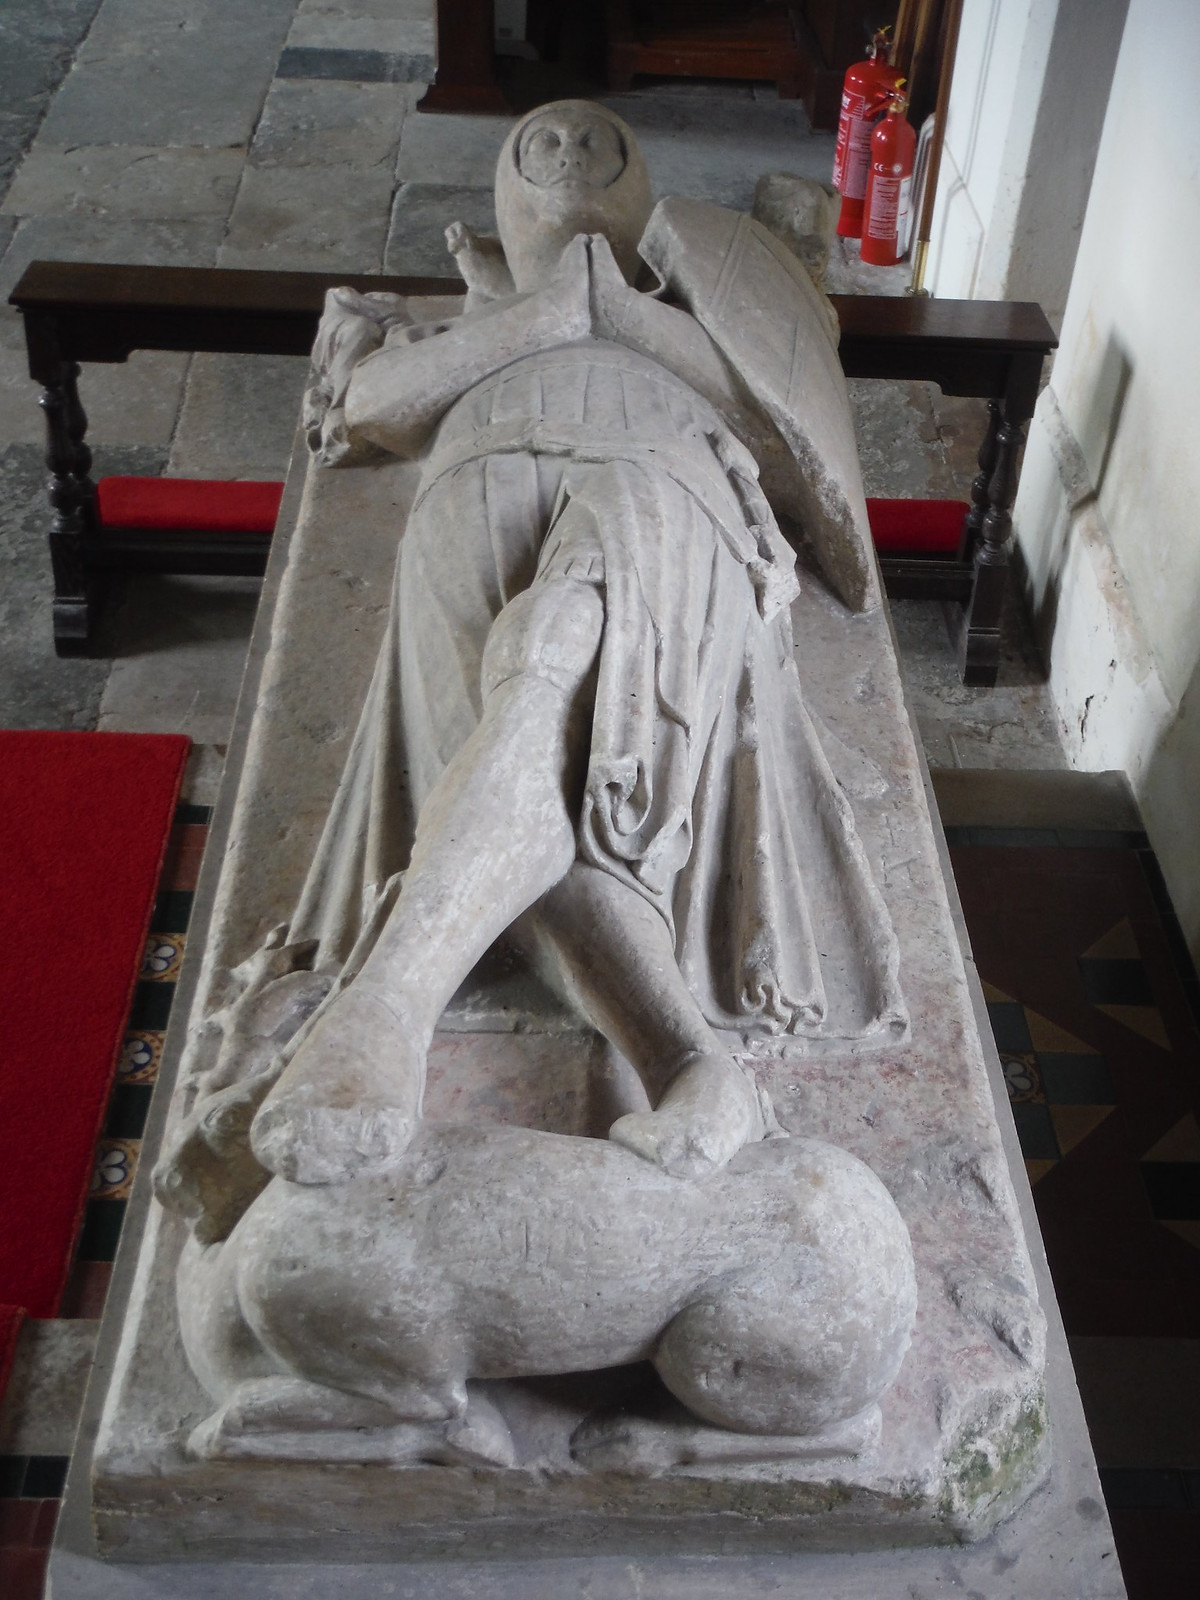 Sir Geoffrey de Canterton (disputed), or a member of the Hotot family, St. Mary's, Michelmersh SWC Walk 265 - Dean to Mottisfont and Dunbridge